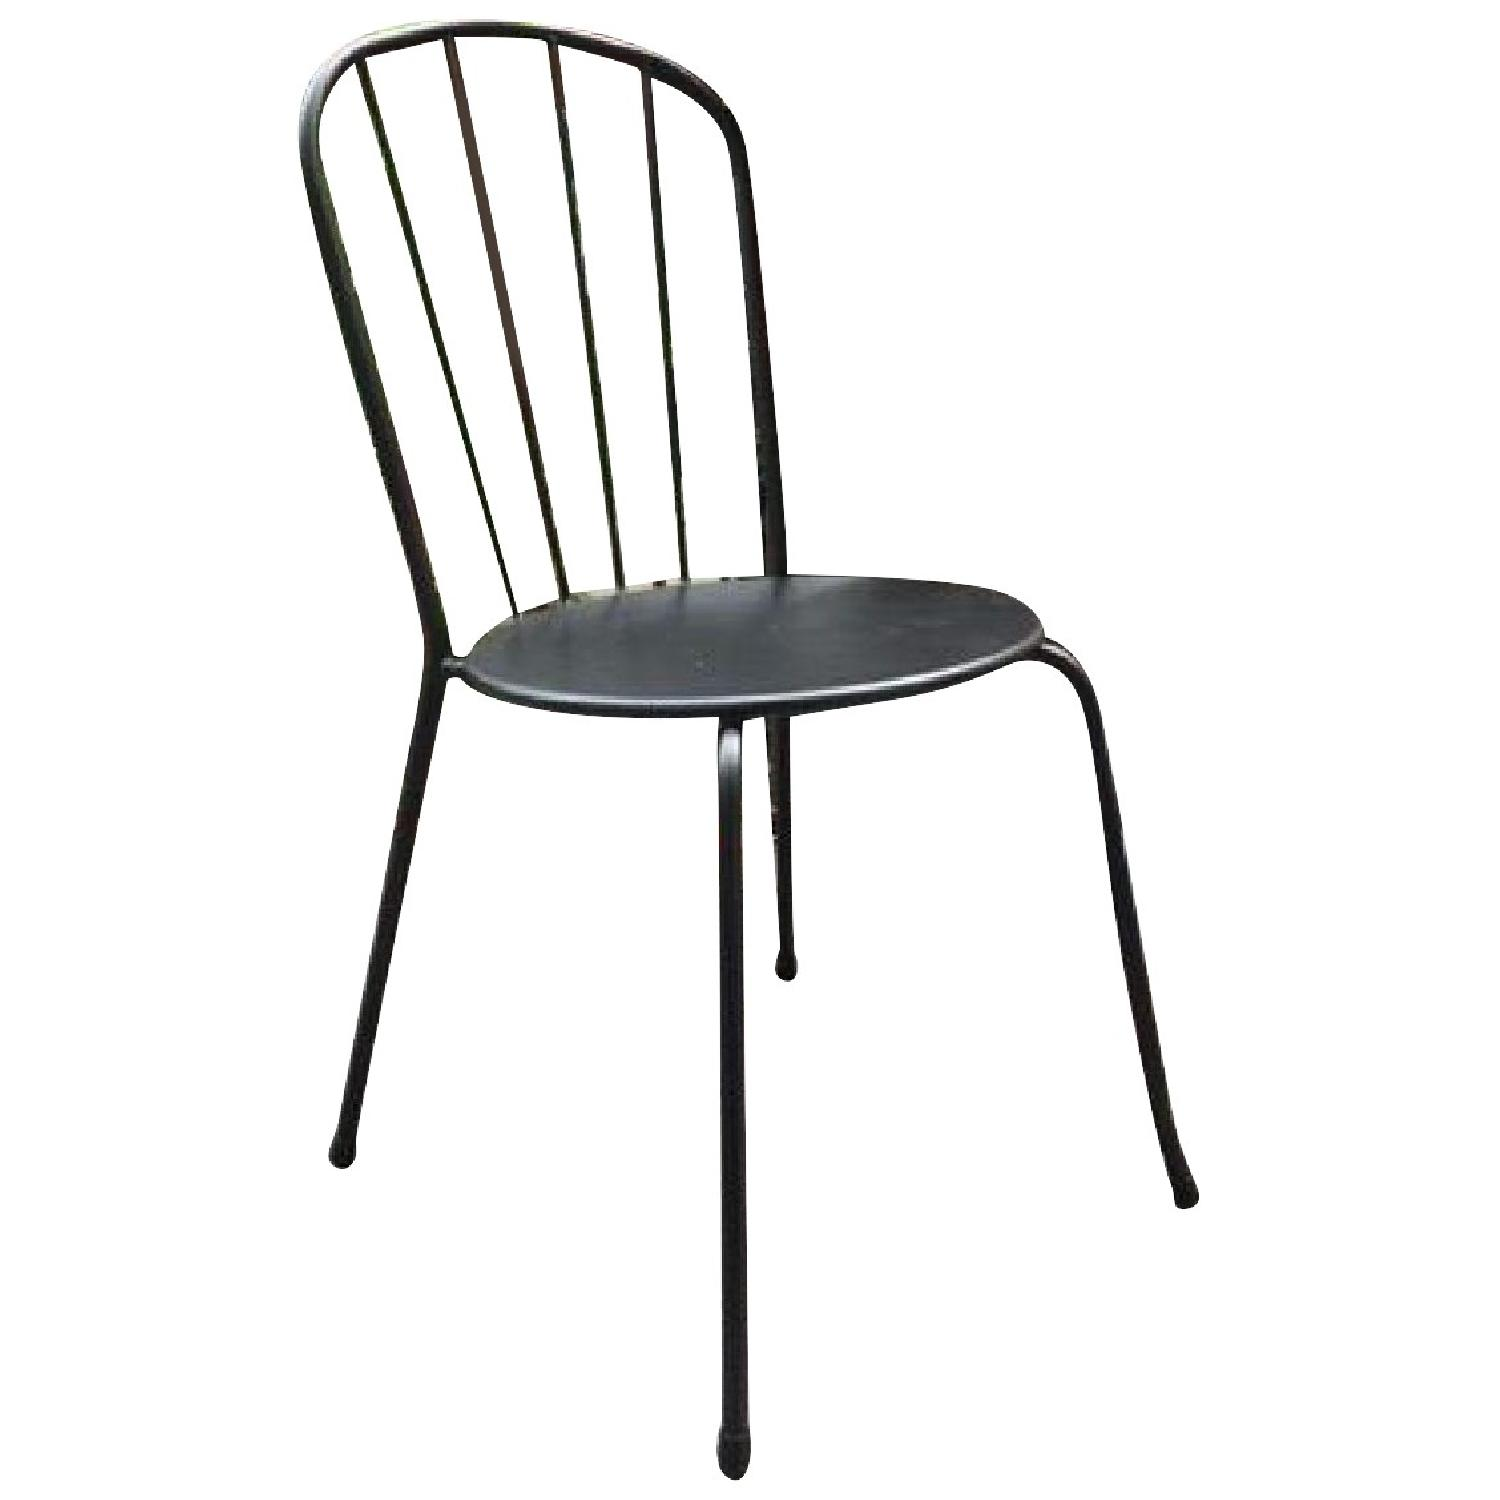 target saginawmusic chair org sling bay patio chairs back stacking metal stackable